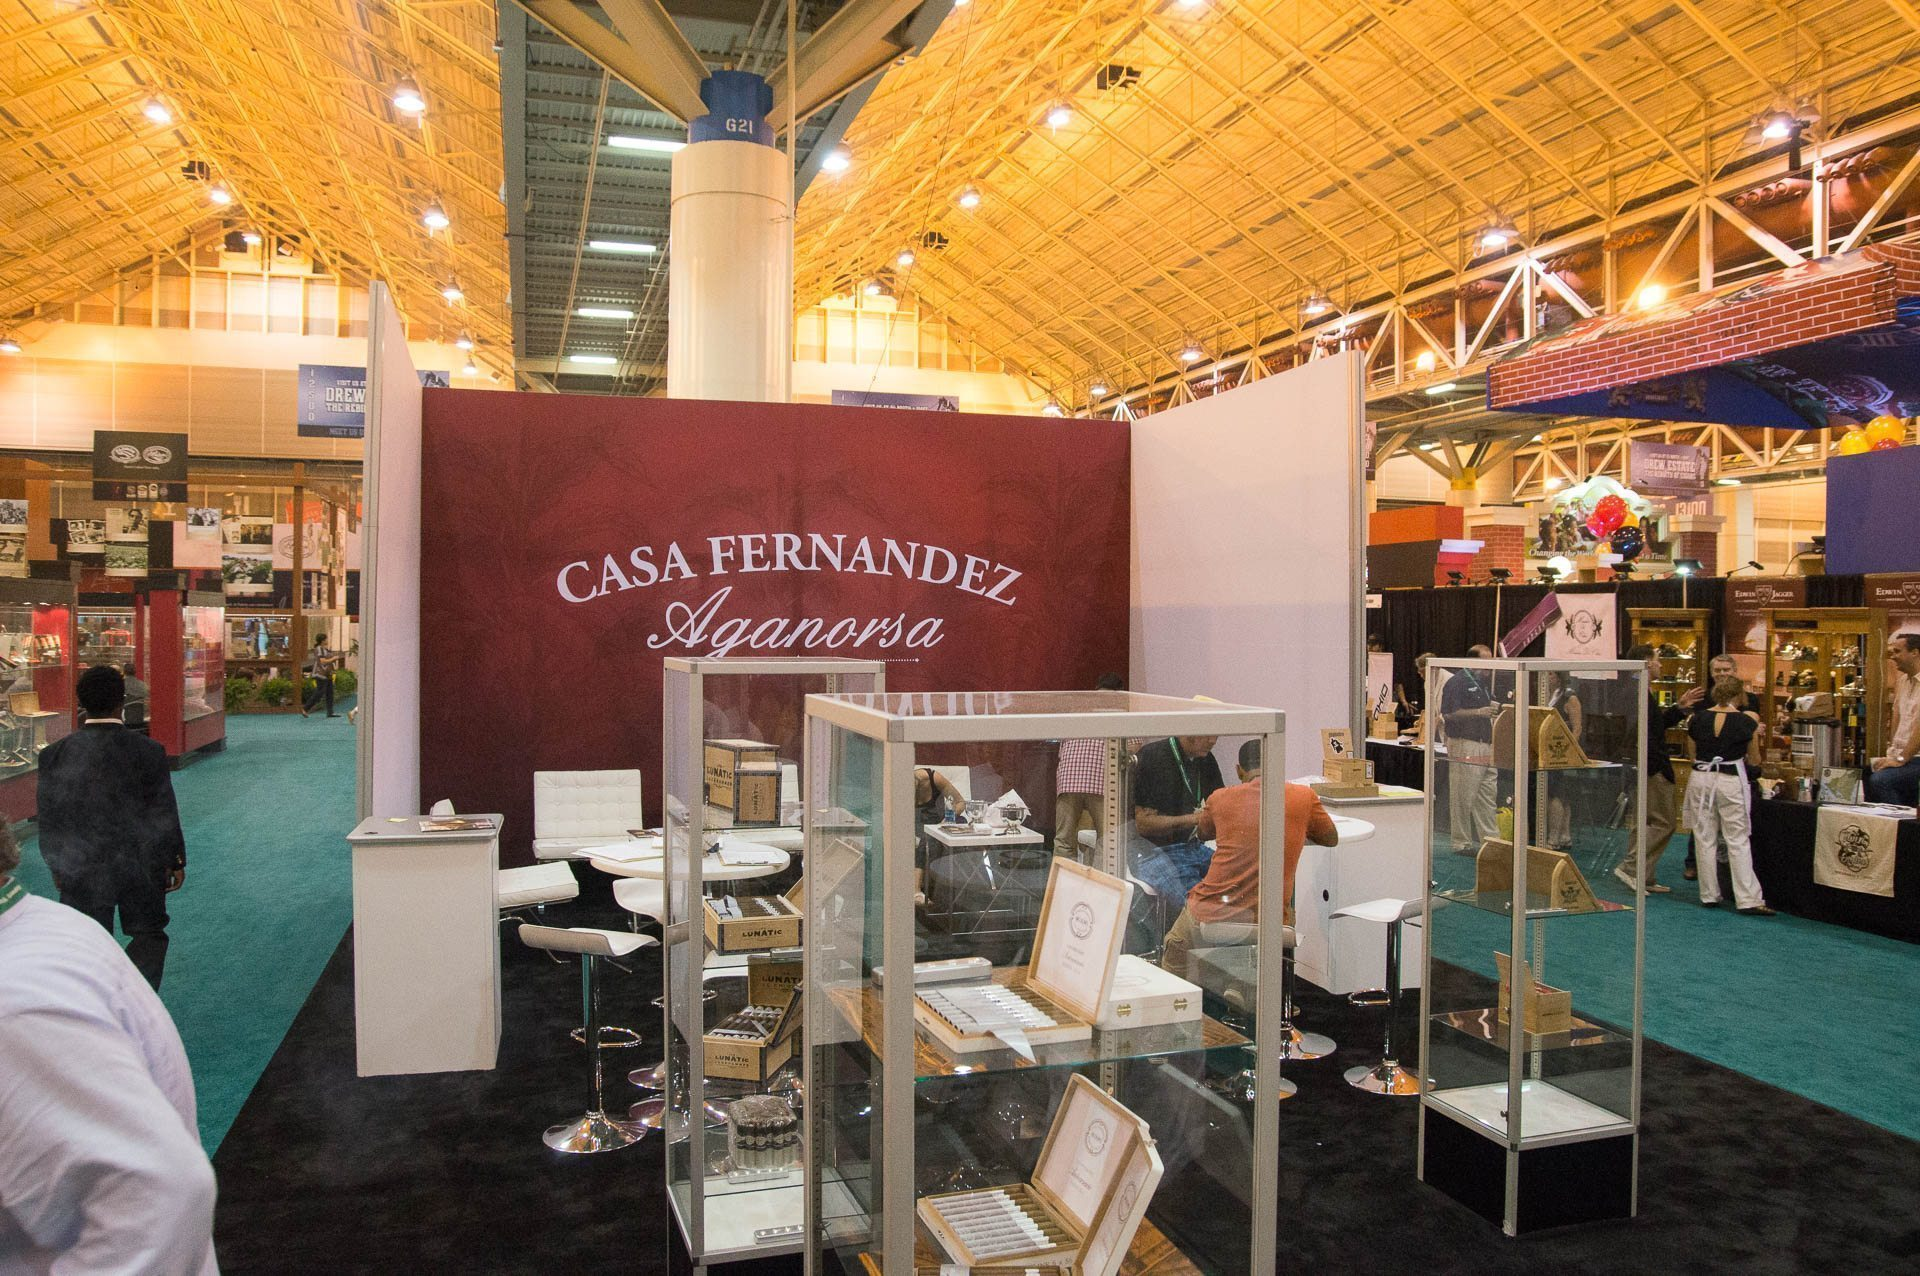 IPCPR: The Show in Pictures 2015 – Casa Fernandez